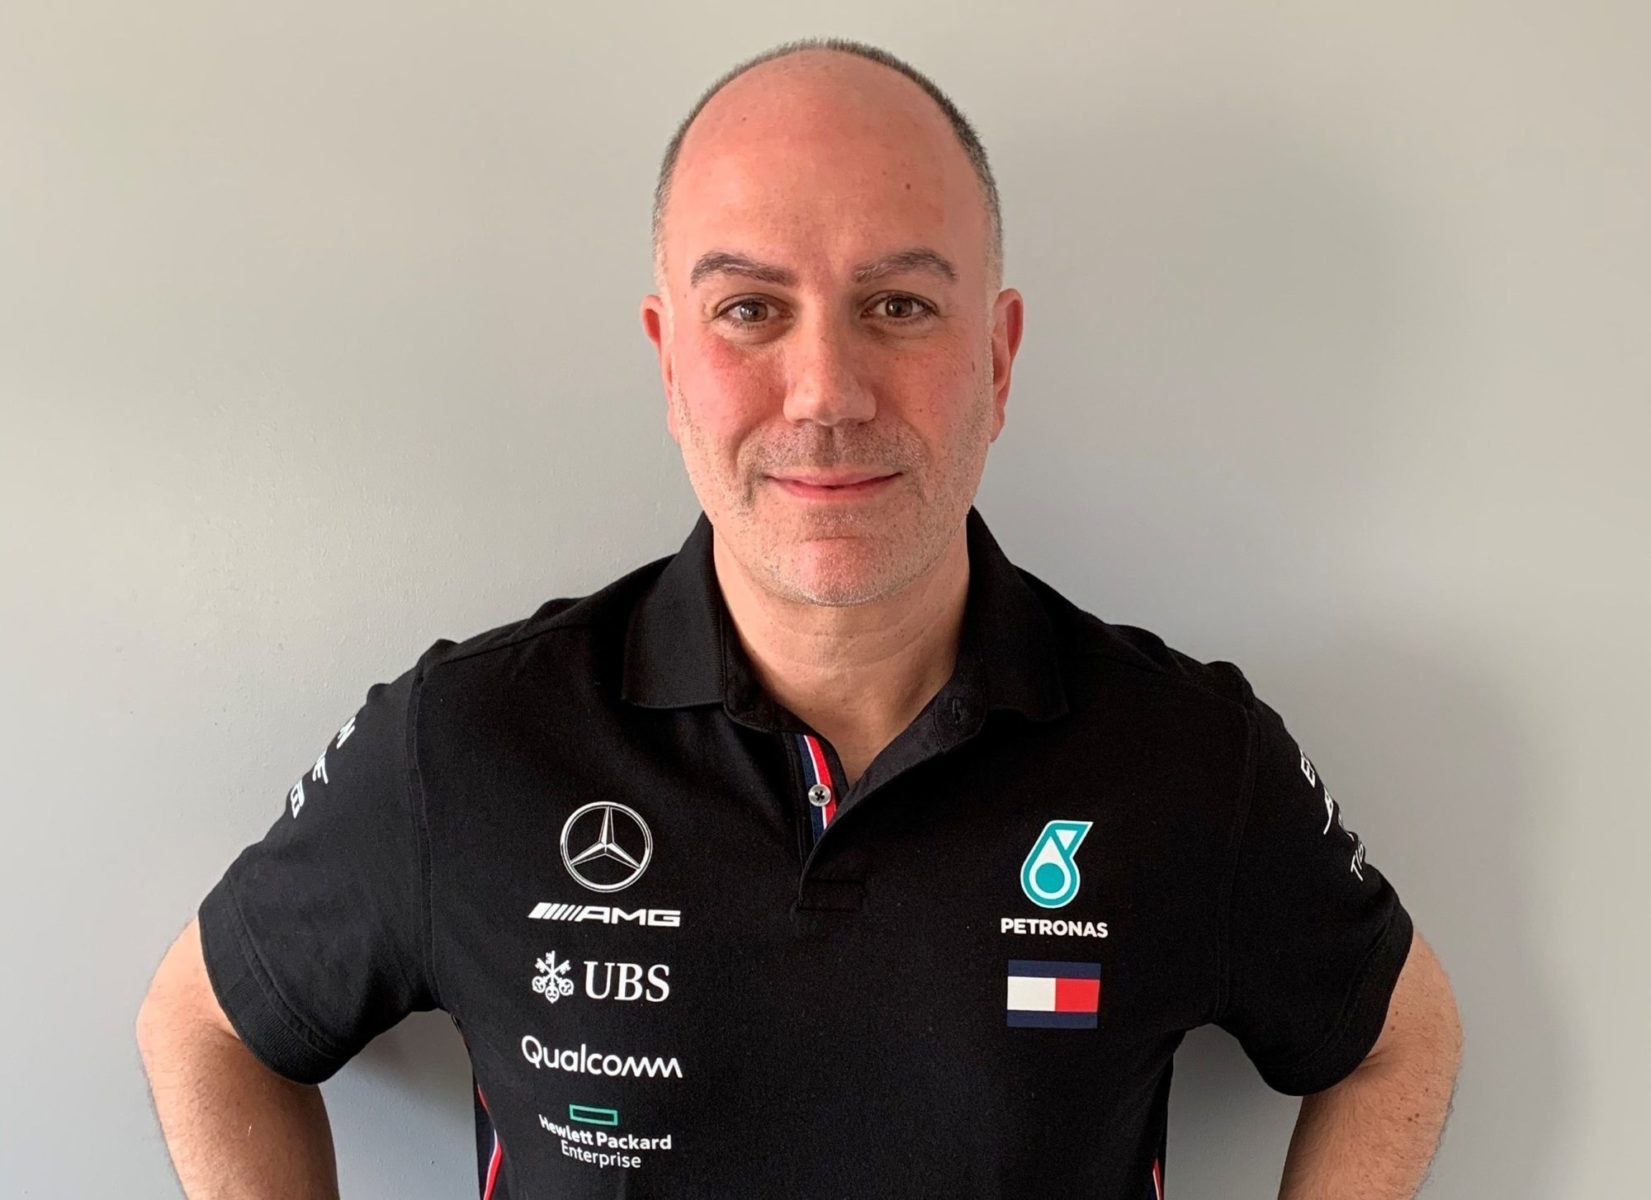 Domenico Ciaglia Managing Director Petronas EMEA